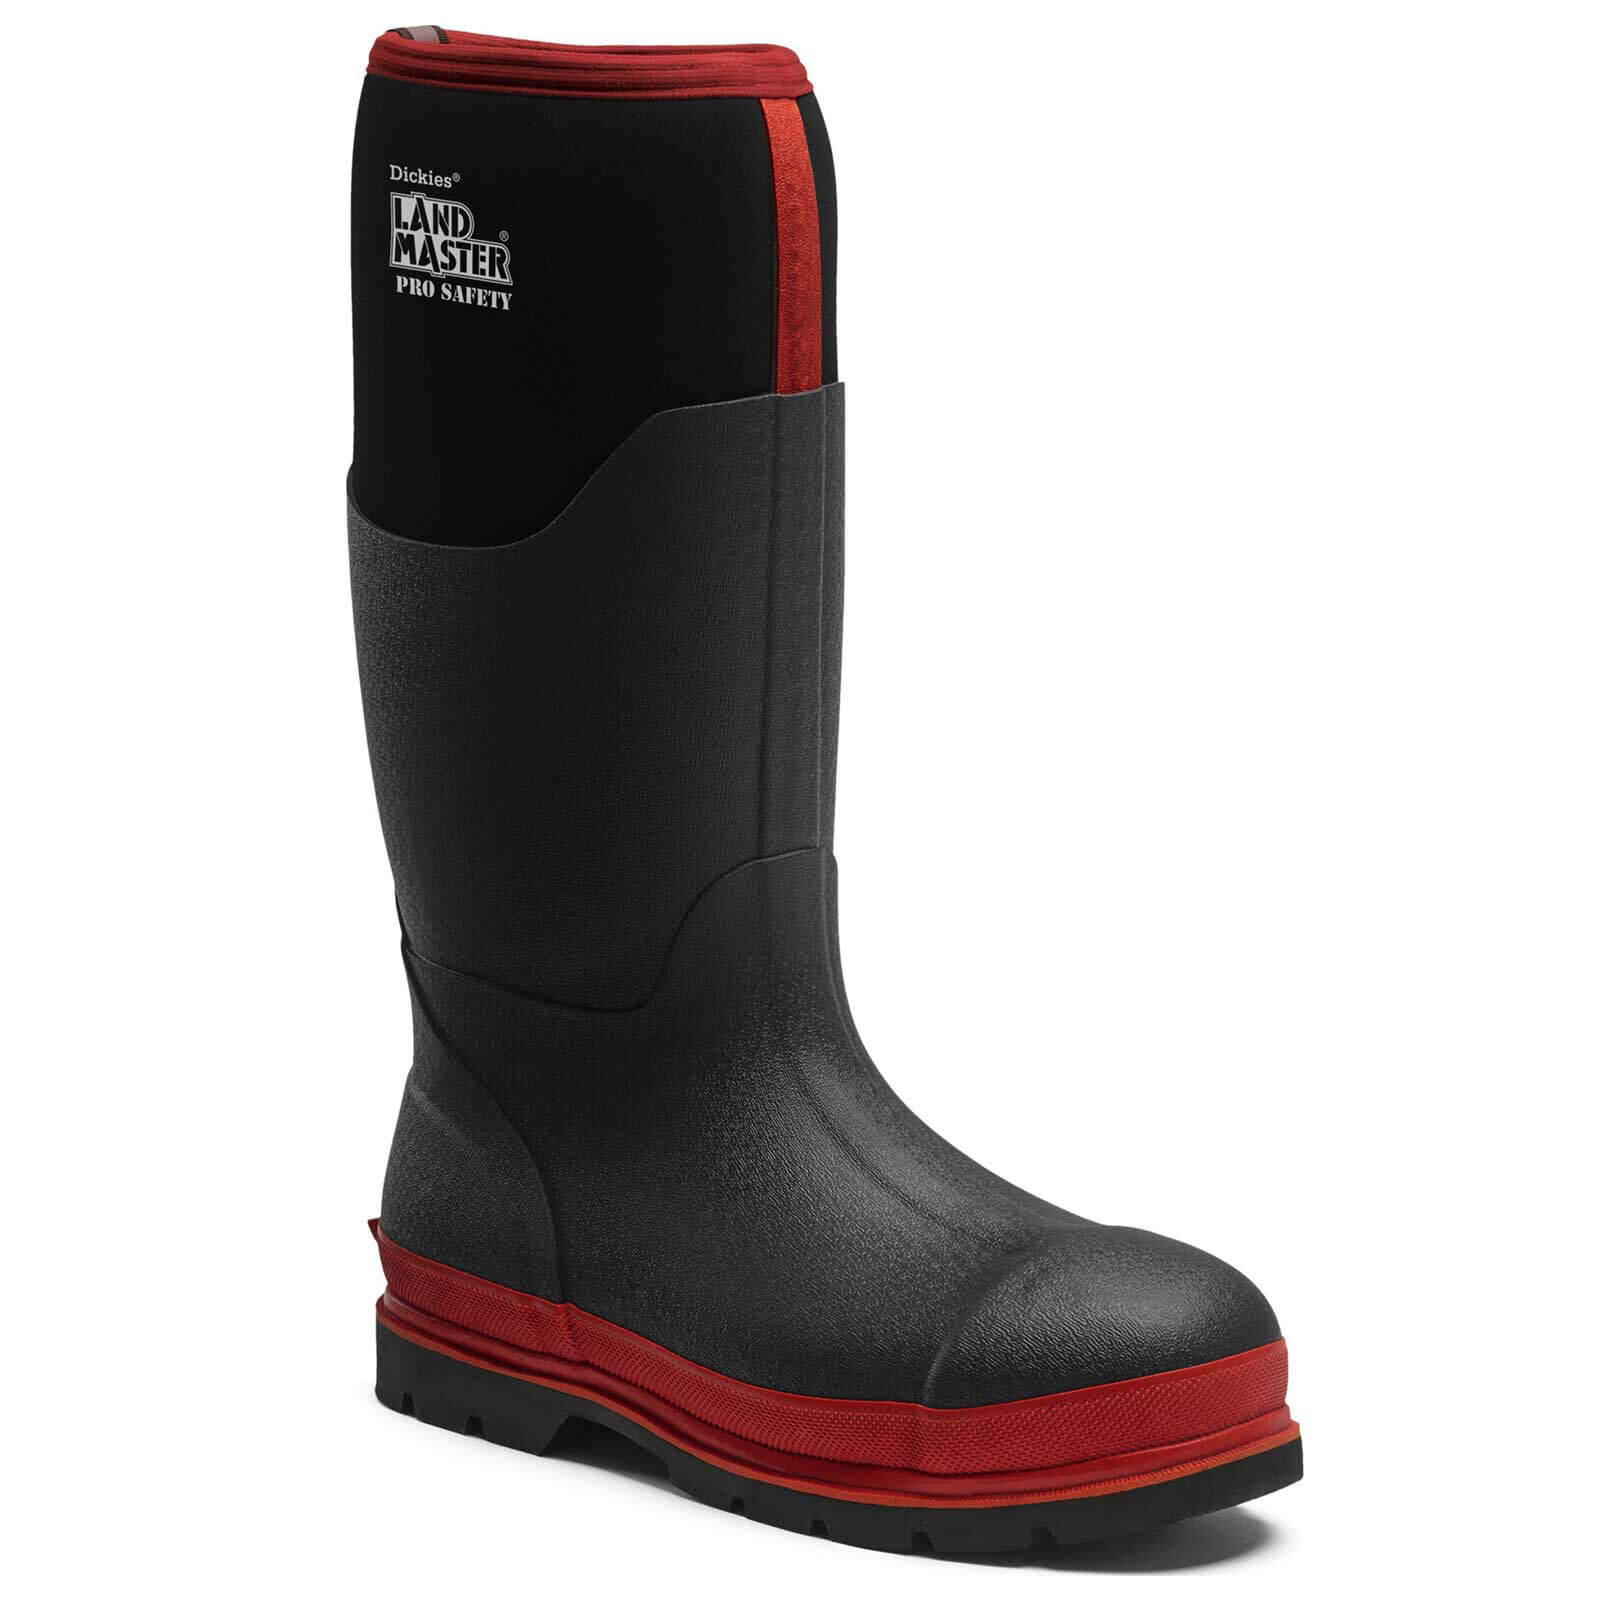 Dickies Landmaster Pro Safety Wellington Boots Black / Red